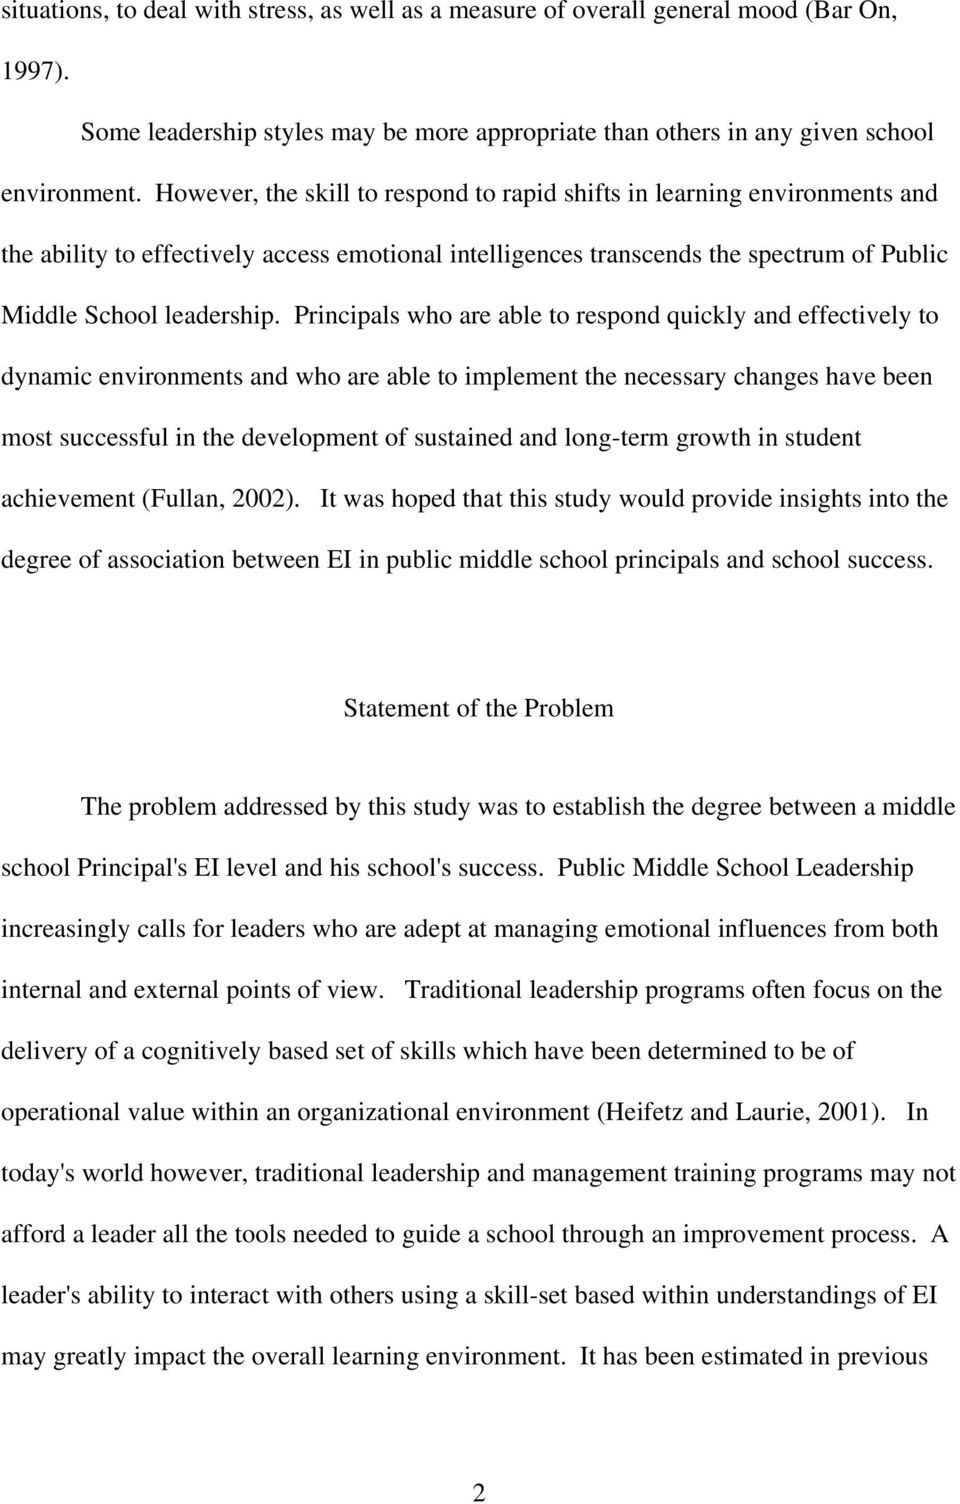 Principals who are able to respond quickly and effectively to dynamic environments and who are able to implement the necessary changes have been most successful in the development of sustained and